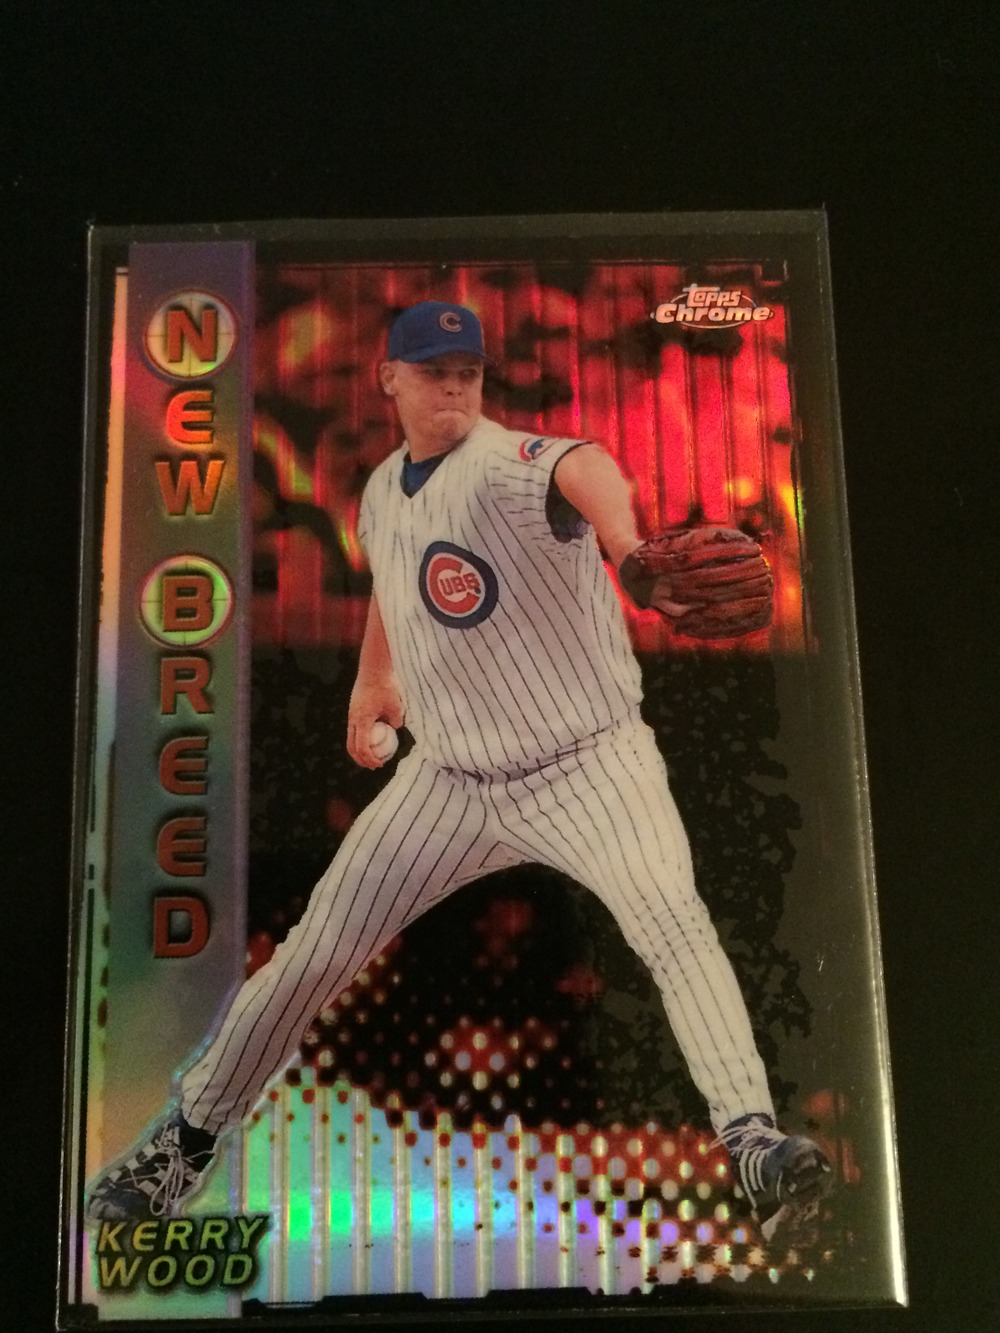 99 Topps Chrome New Breed Kerry Wood Refractor From Peps Collectibles